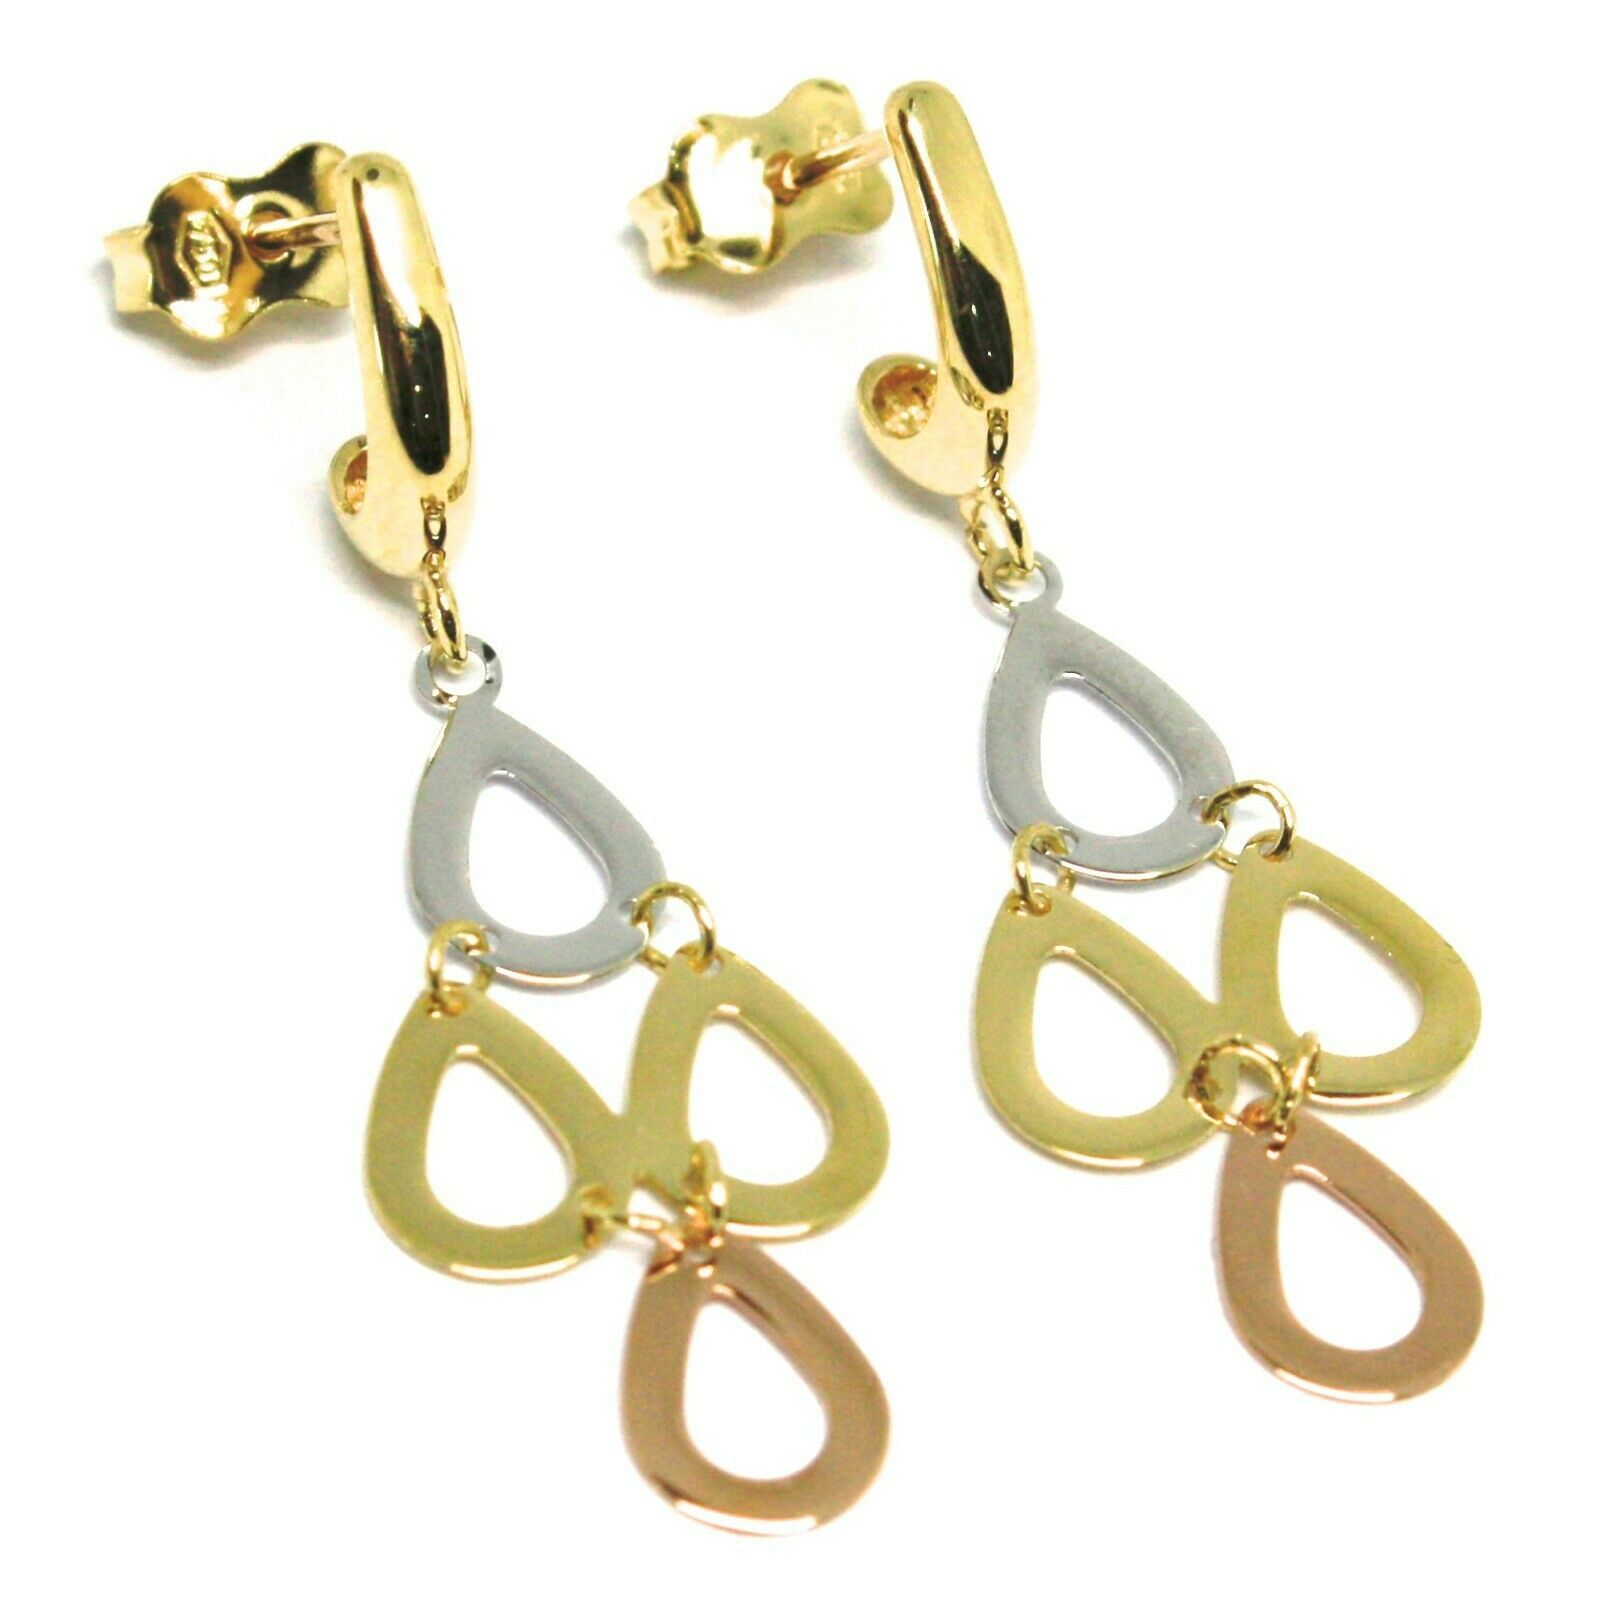 18K YELLOW WHITE ROSE GOLD PENDANT EARRINGS, FLAT DROPS, 1.4 INCHES